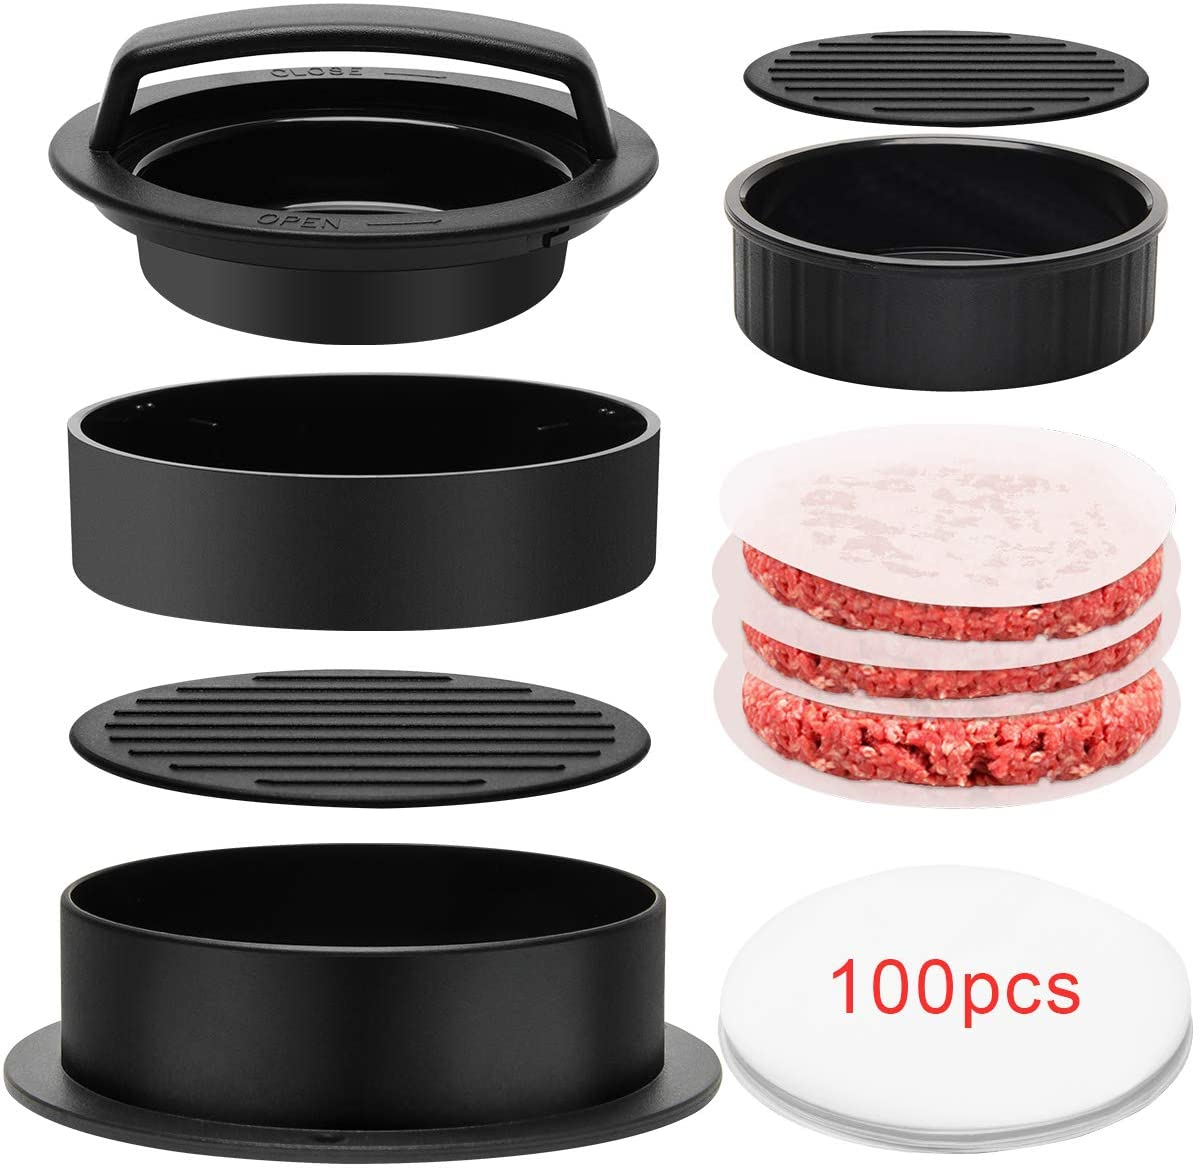 Luxiv 3 in 1 Burger Press, Hamburger Patty Maker Stuffed Burgers Press with 100p Burger Paper for BBQ Non-Stick Sliders Beef Burger Press (Black)